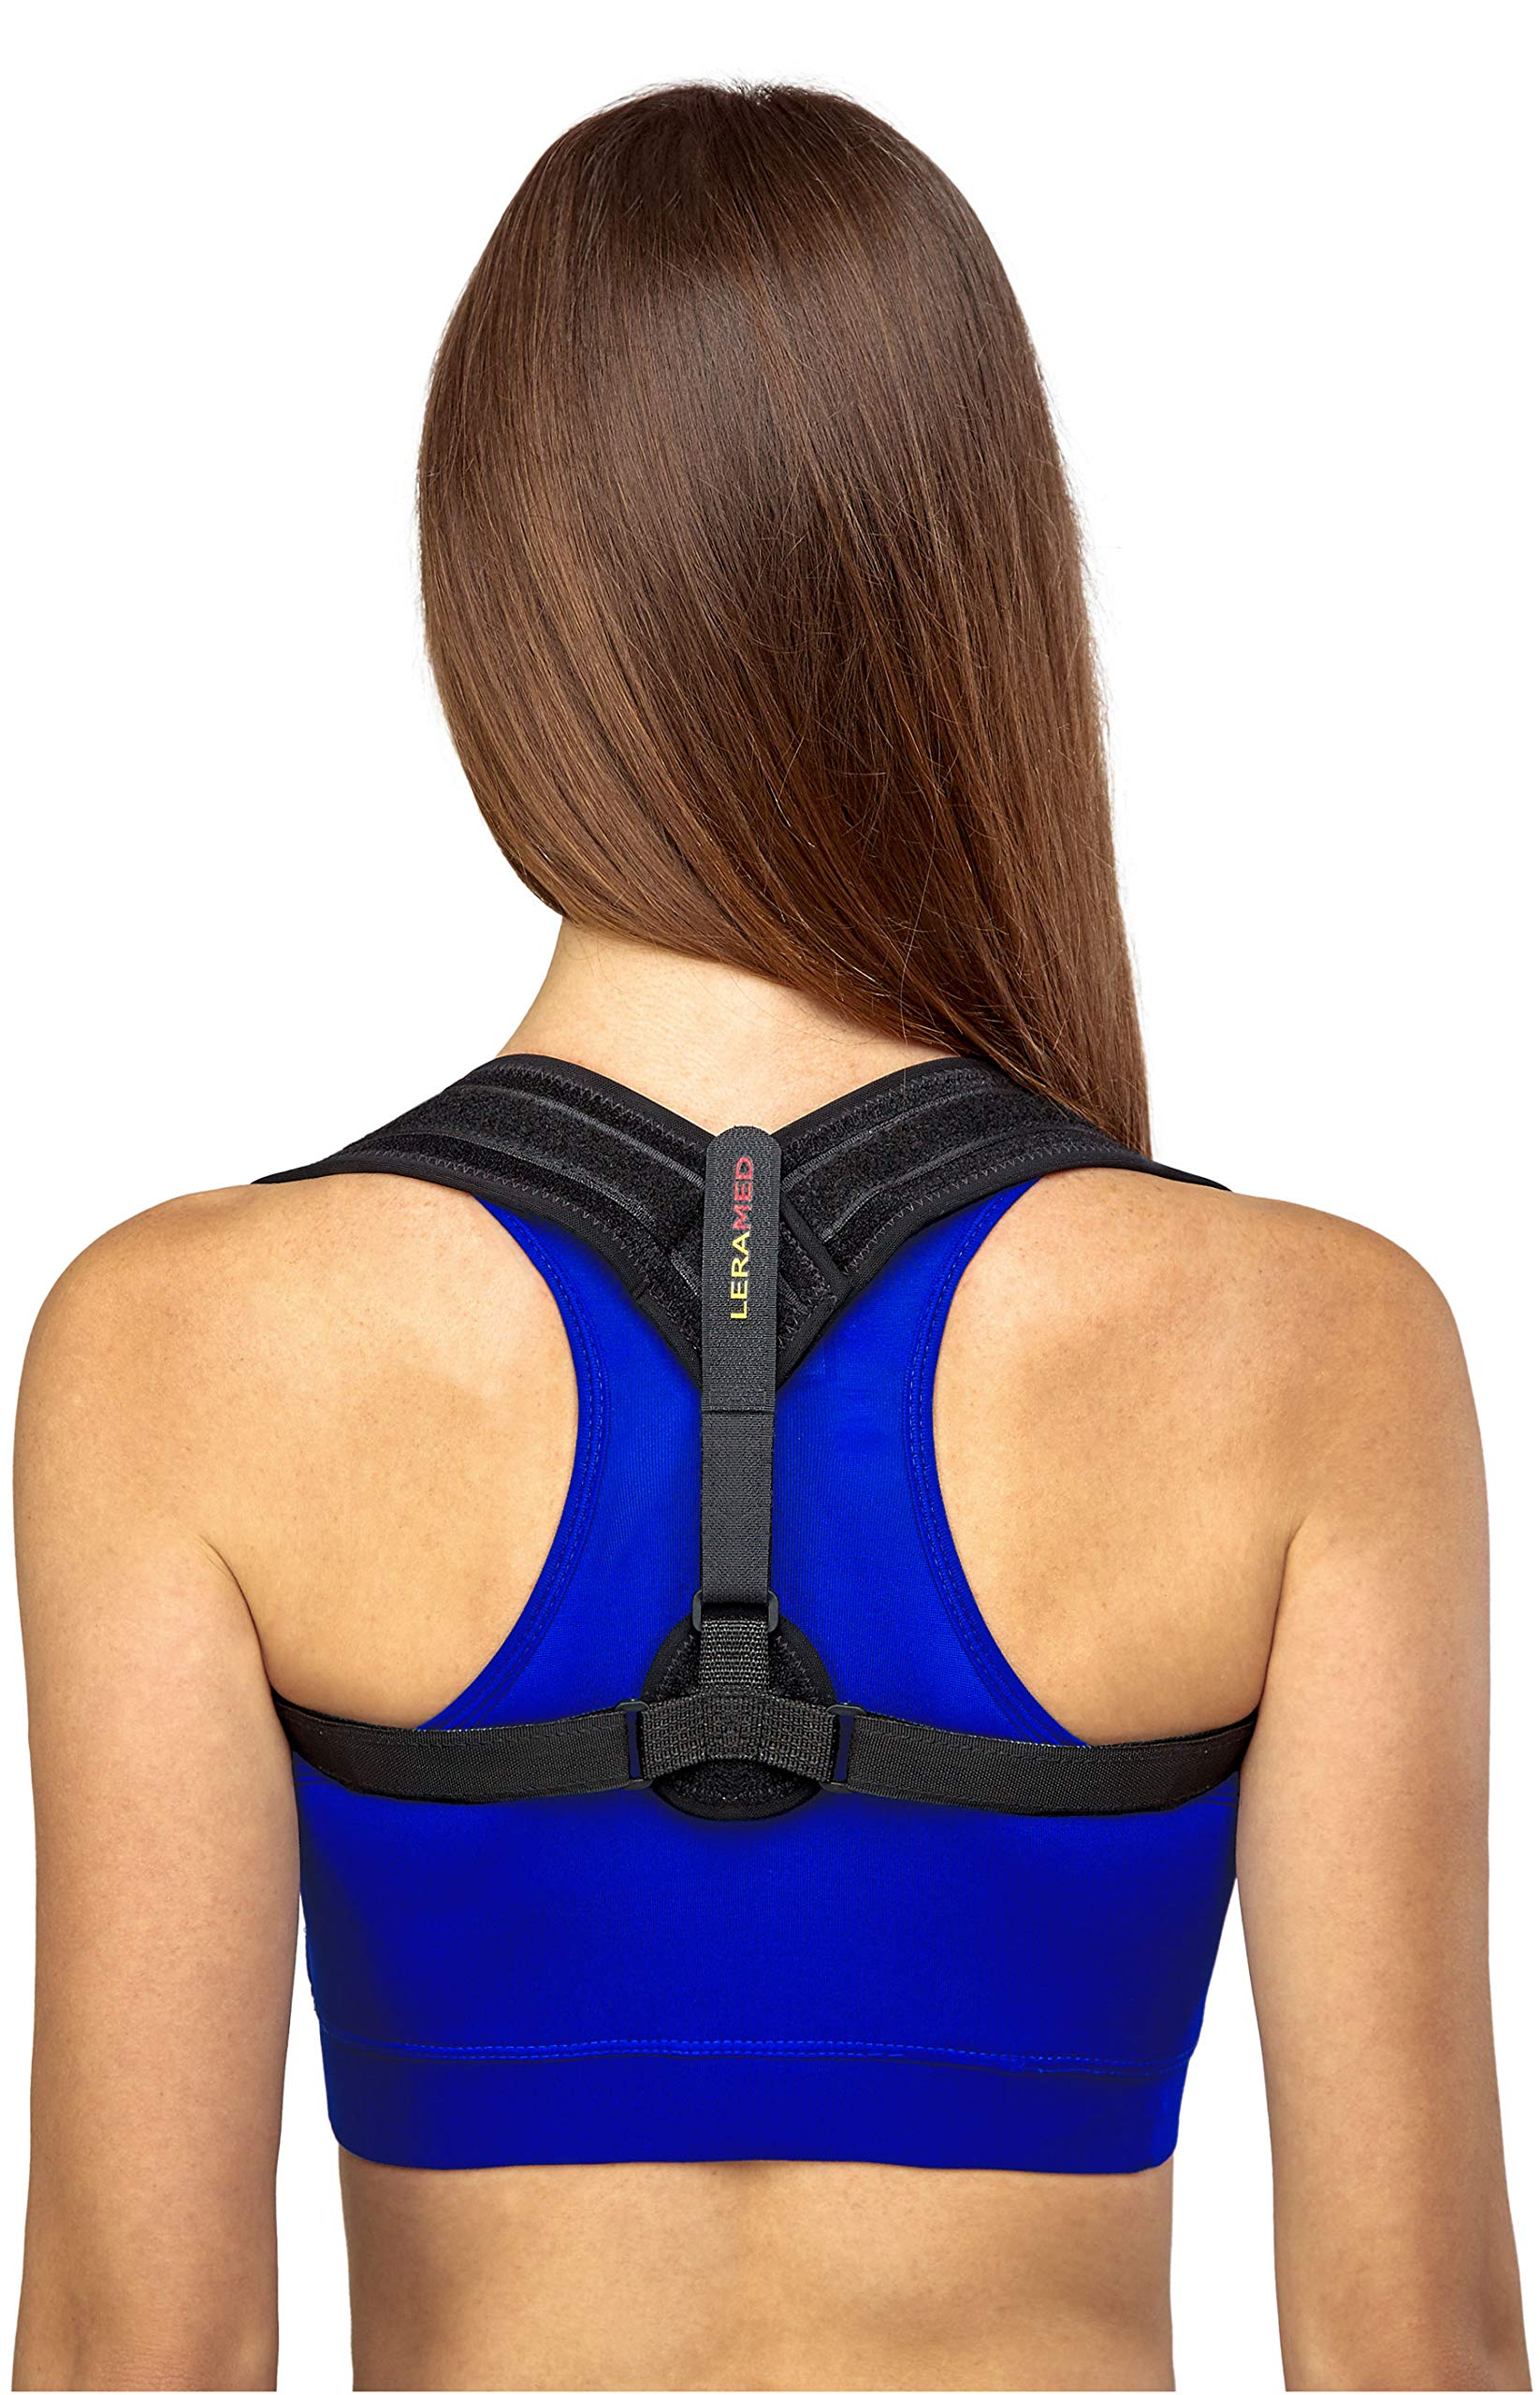 Leramed Posture Corrector for Women Men - Effective and Comfortable Adjustable Posture Correct Brace - Posture Brace - Clavicle Support Brace - Posture Support - Upper Back Pain Relief by Leramed